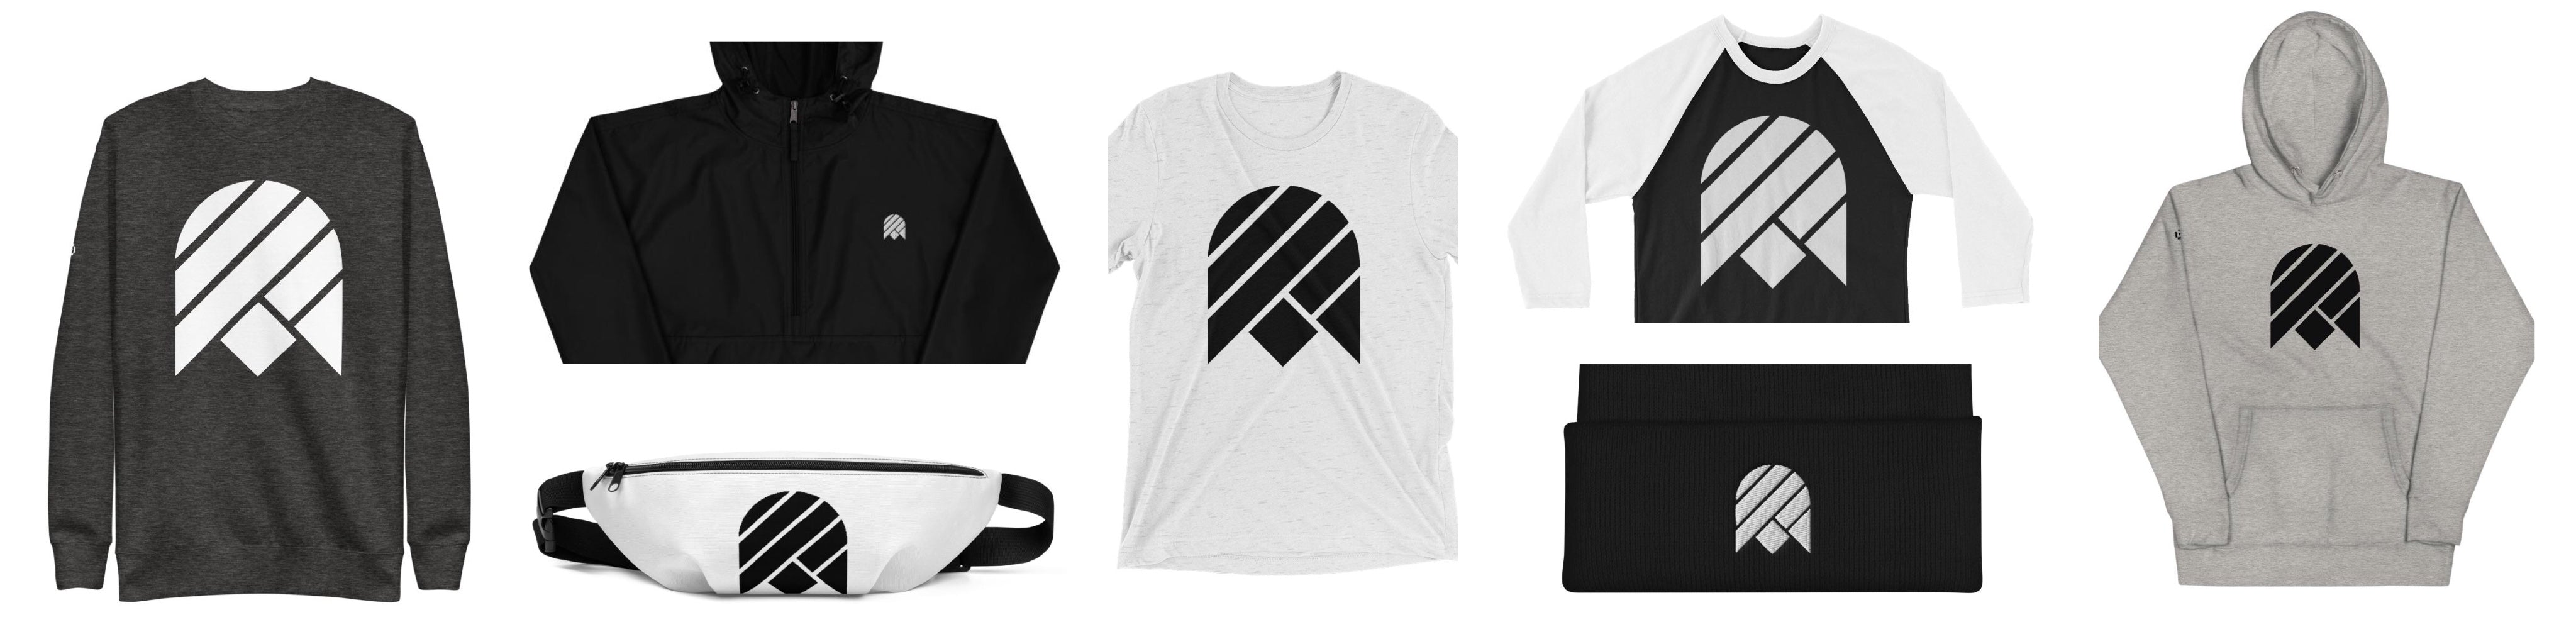 AMORPHOUS | APPAREL COLLECTION by BLTZ.US